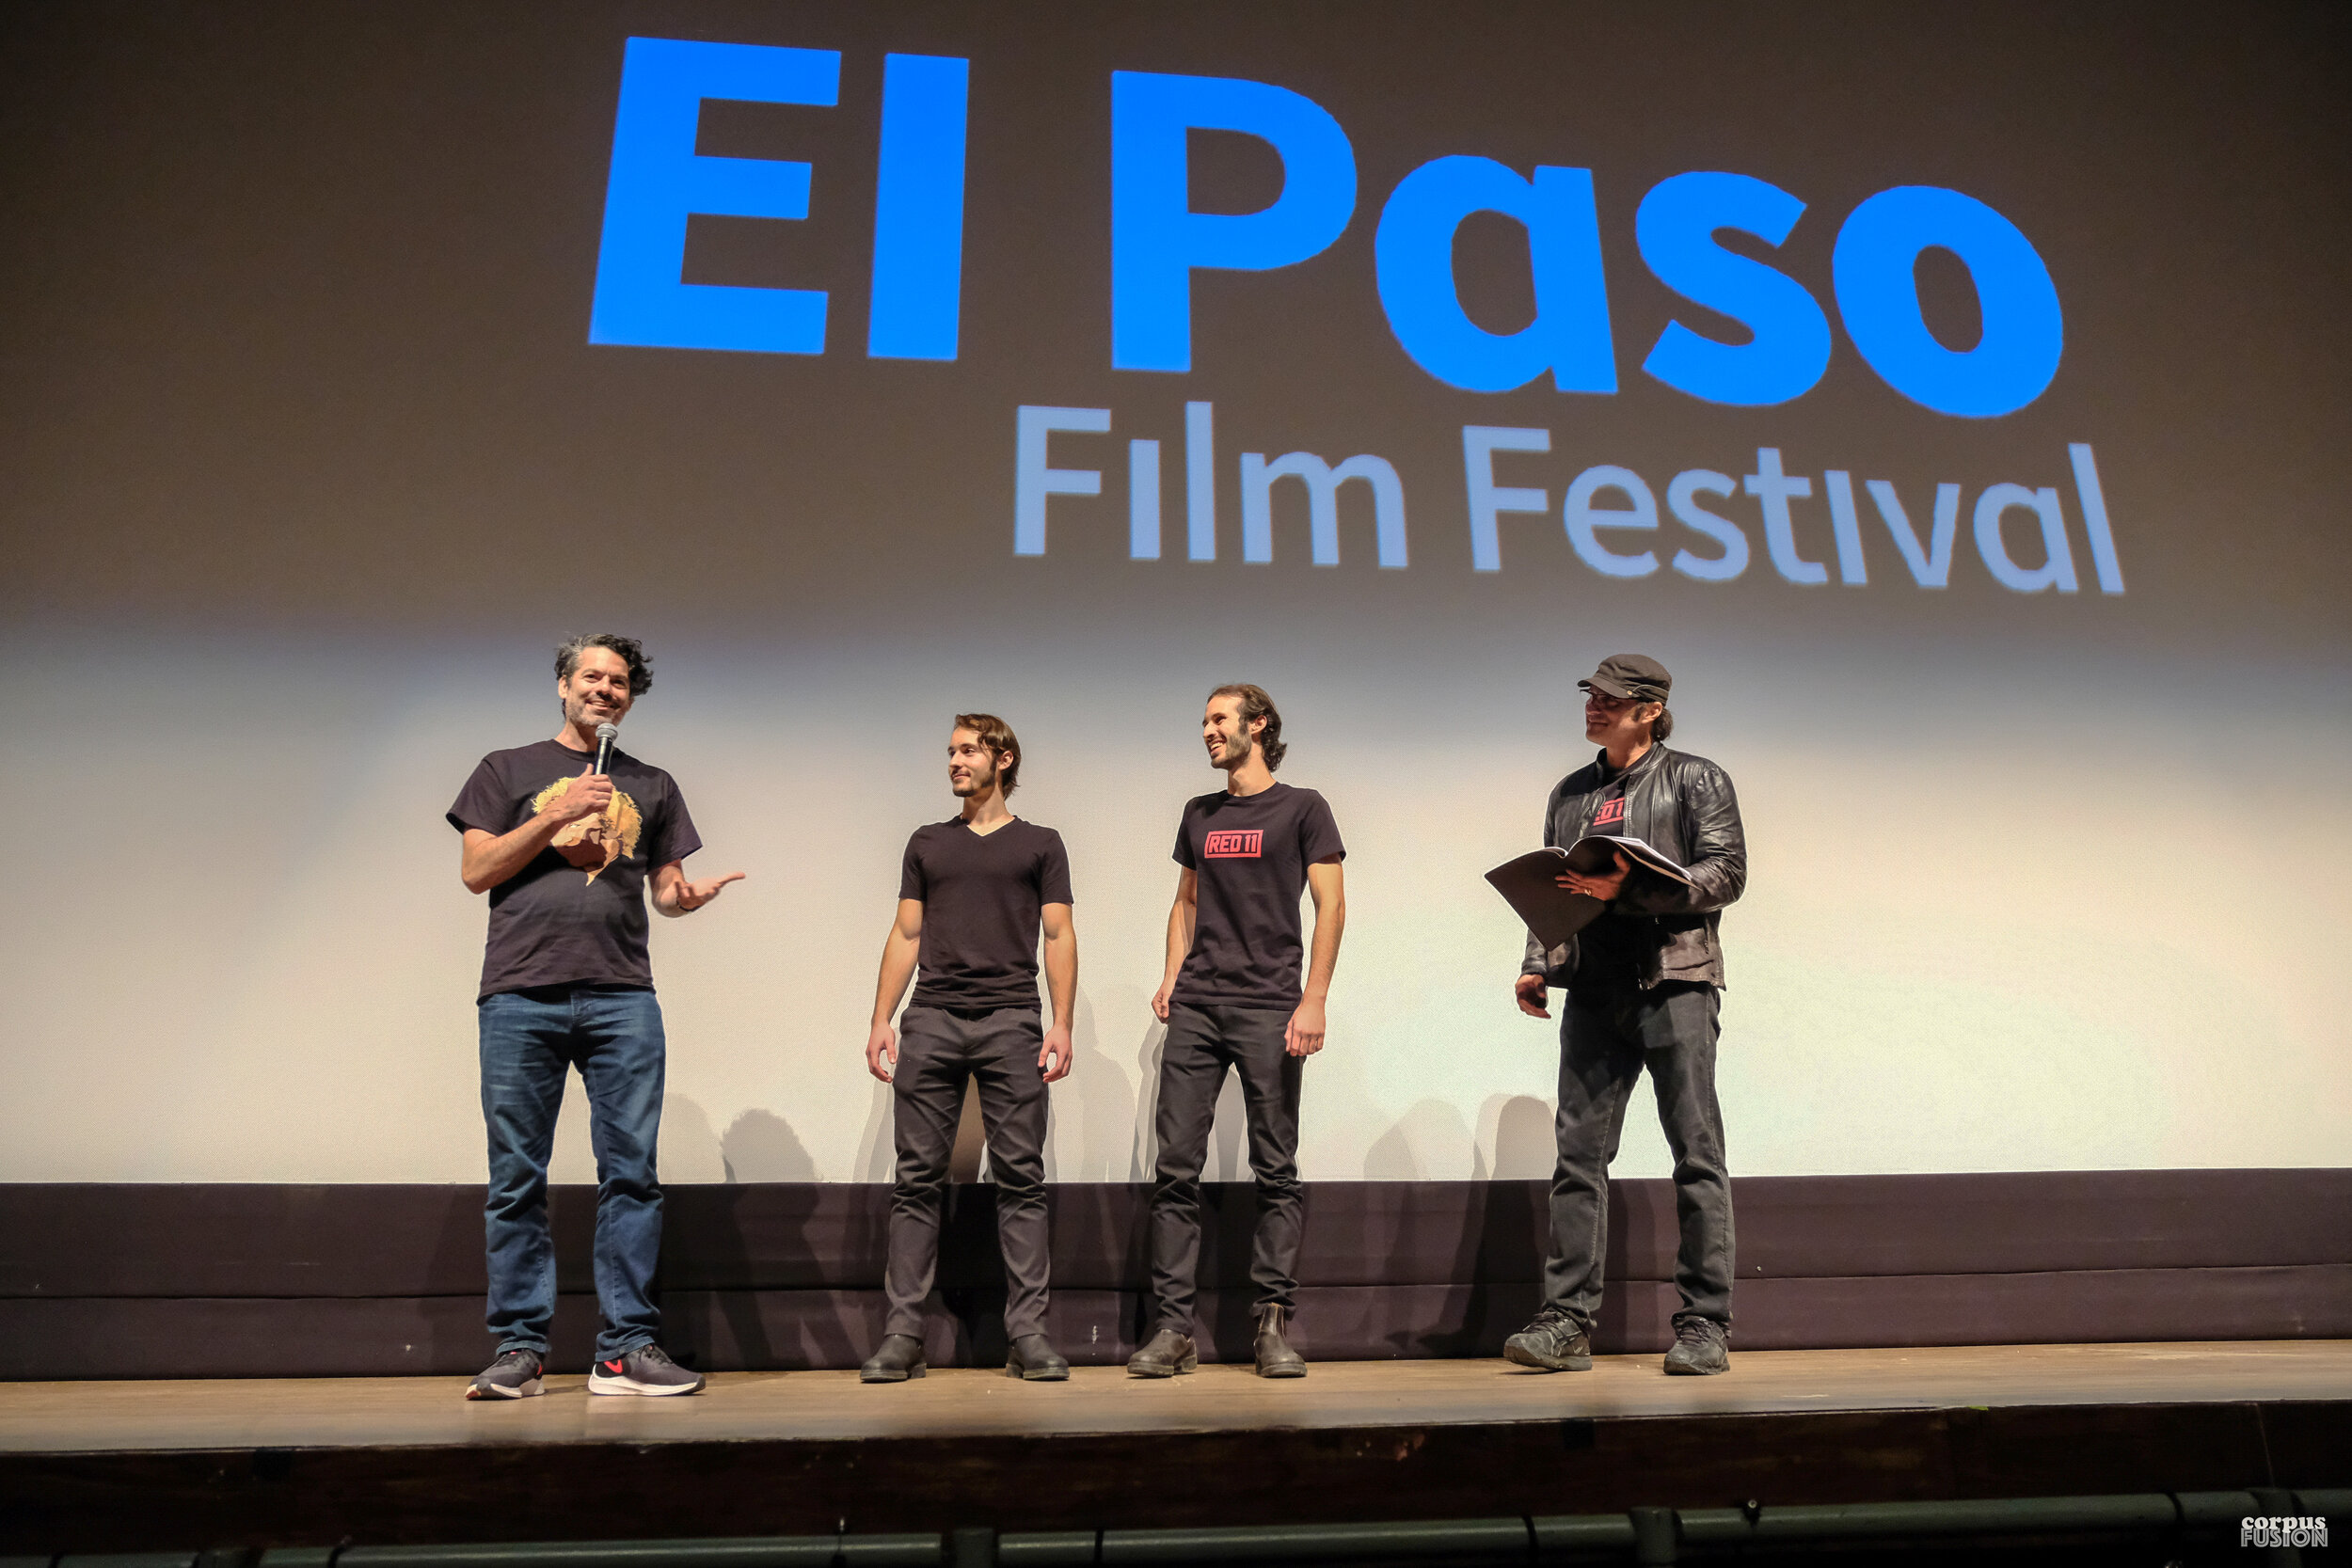 2019 FESTIVAL WINNERS - See which films and filmmakers won cash prizes at the 2019 El Paso Film Festival.